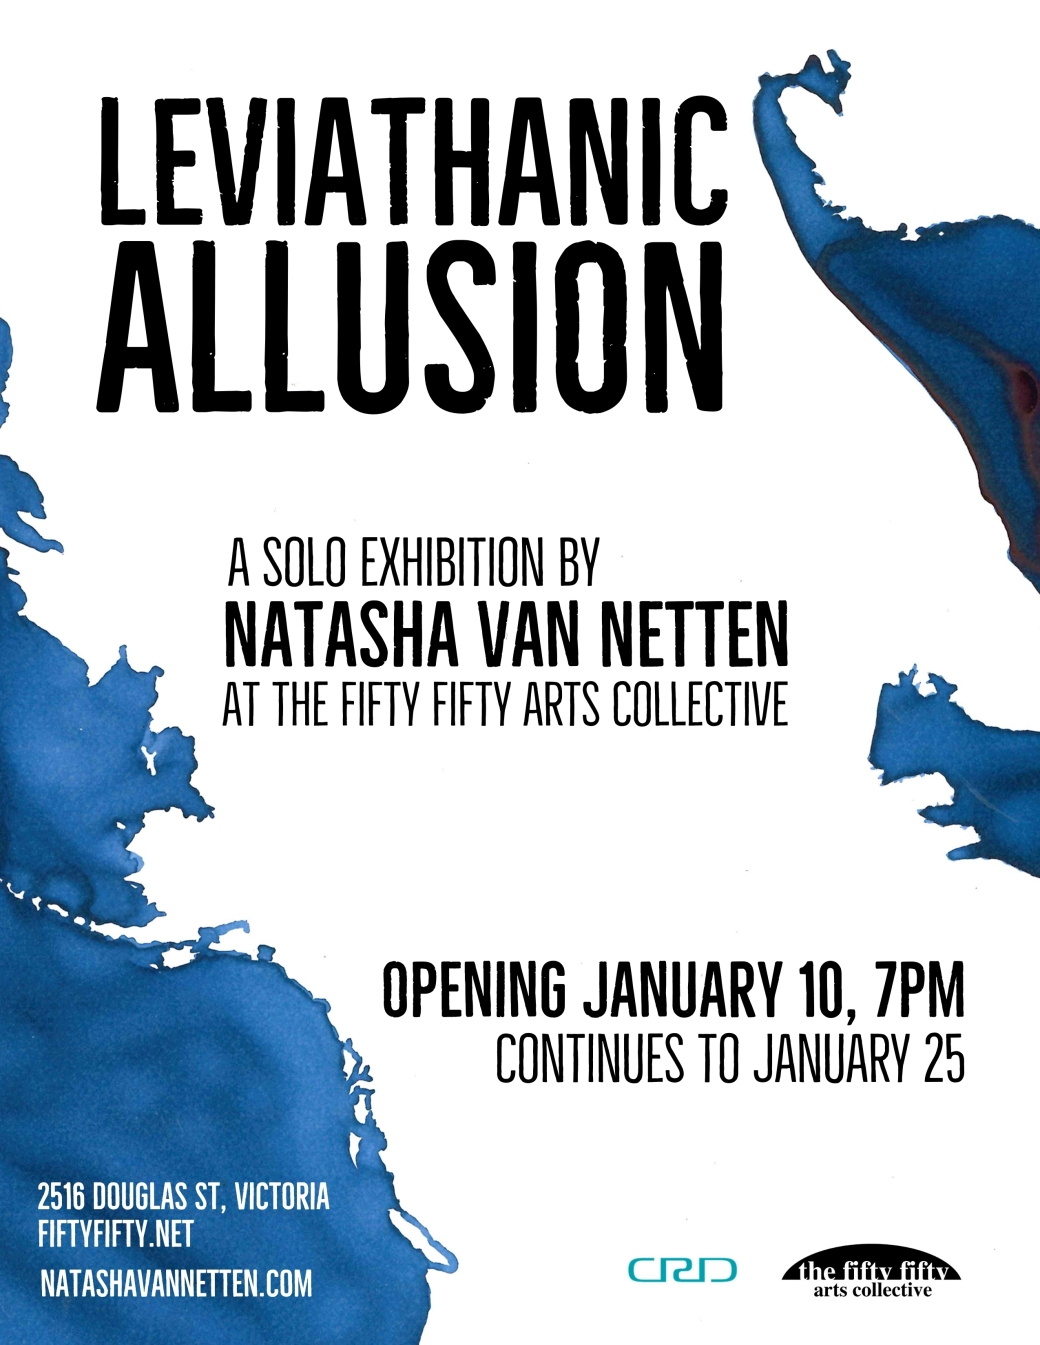 Leviathanic Allusion at the fifty fifty